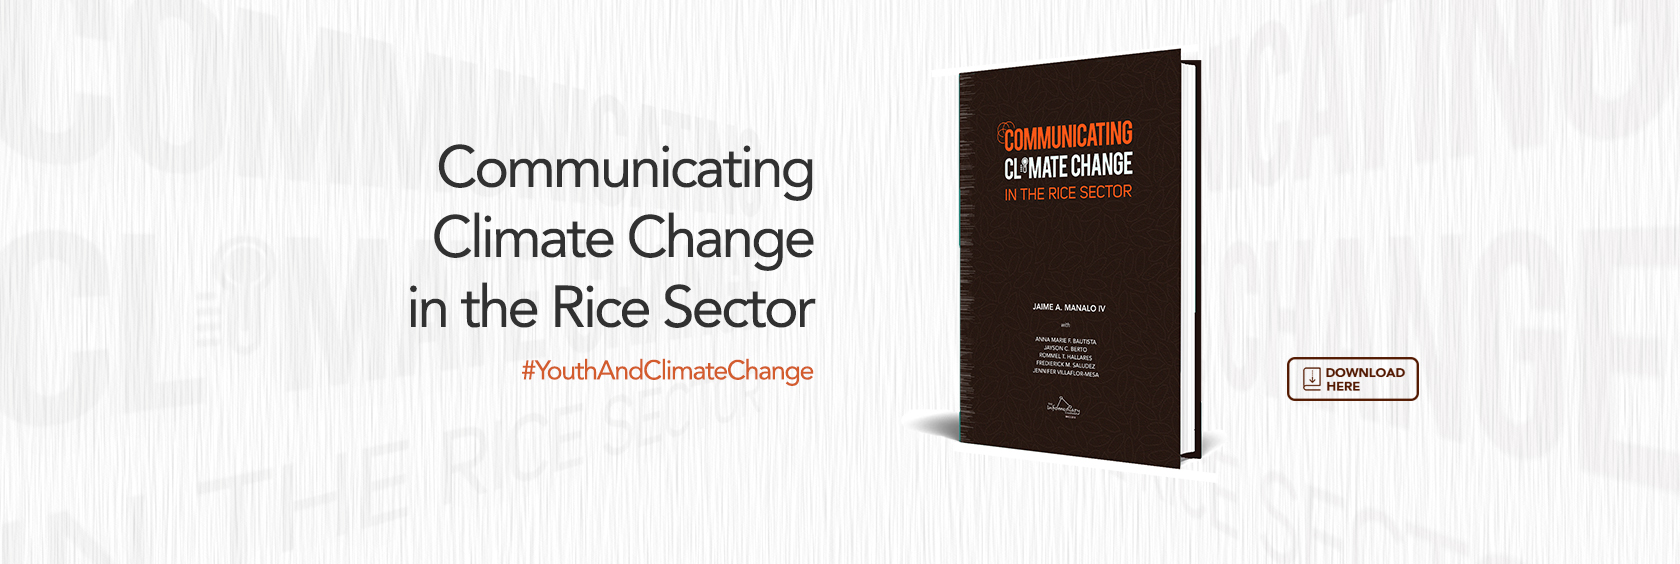 communicating-climate-change-slider